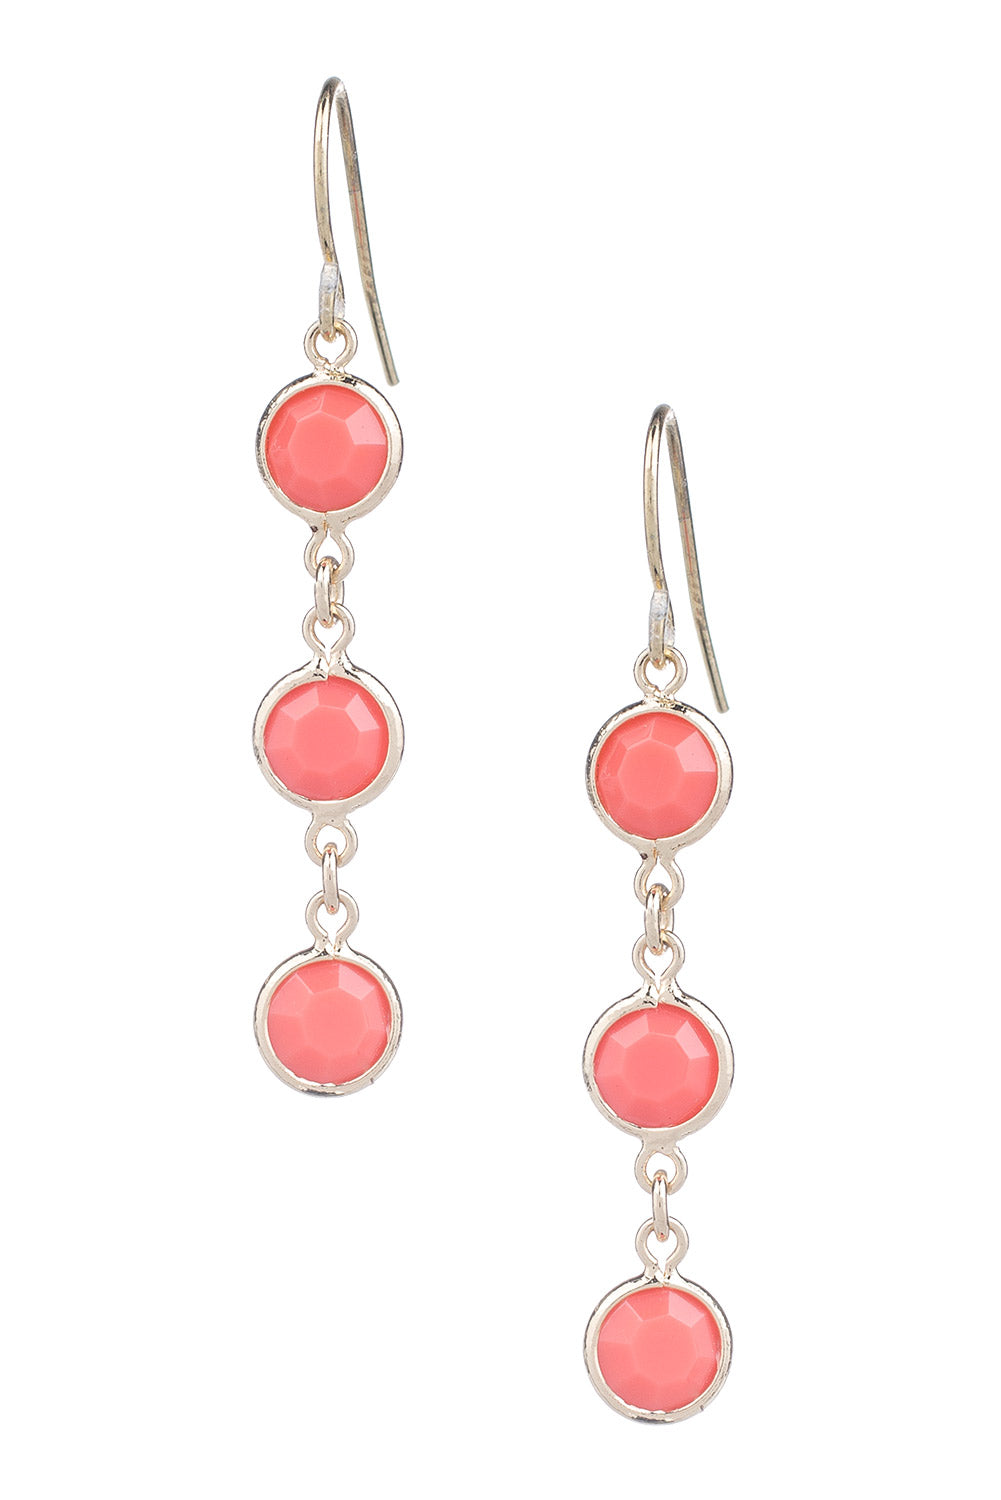 Type 1 Just Peachy About It Earrings